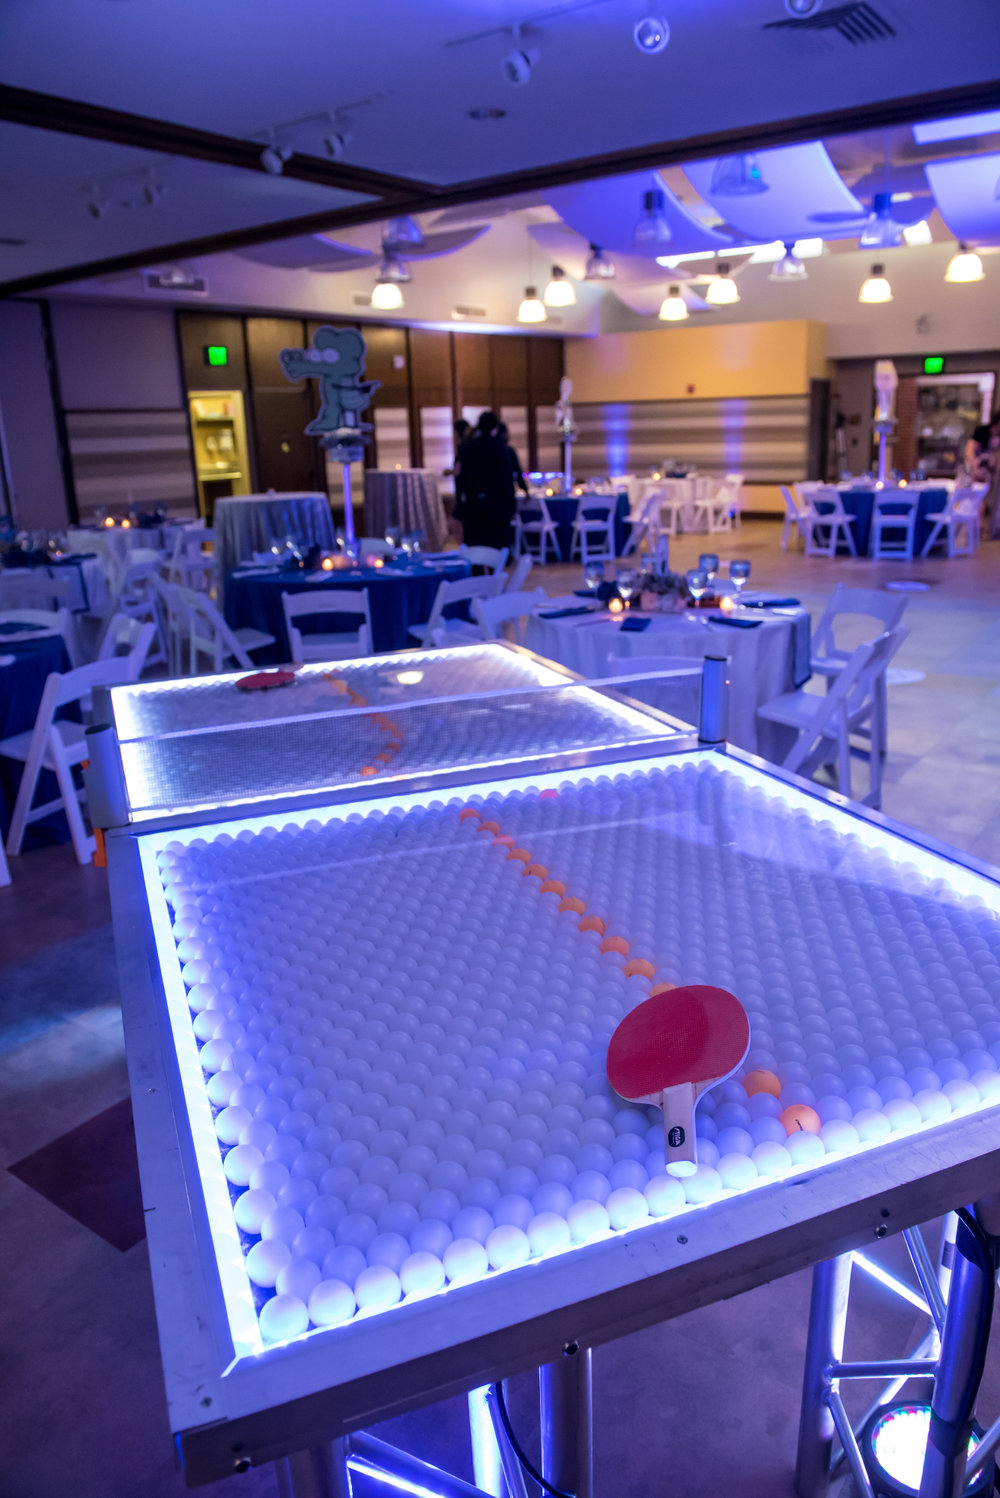 Maxs Cartoons | Ping Pong Games | Bar Mitzvah cartoon theme decor by Innovative Party Planners at Baltimore Hebrew